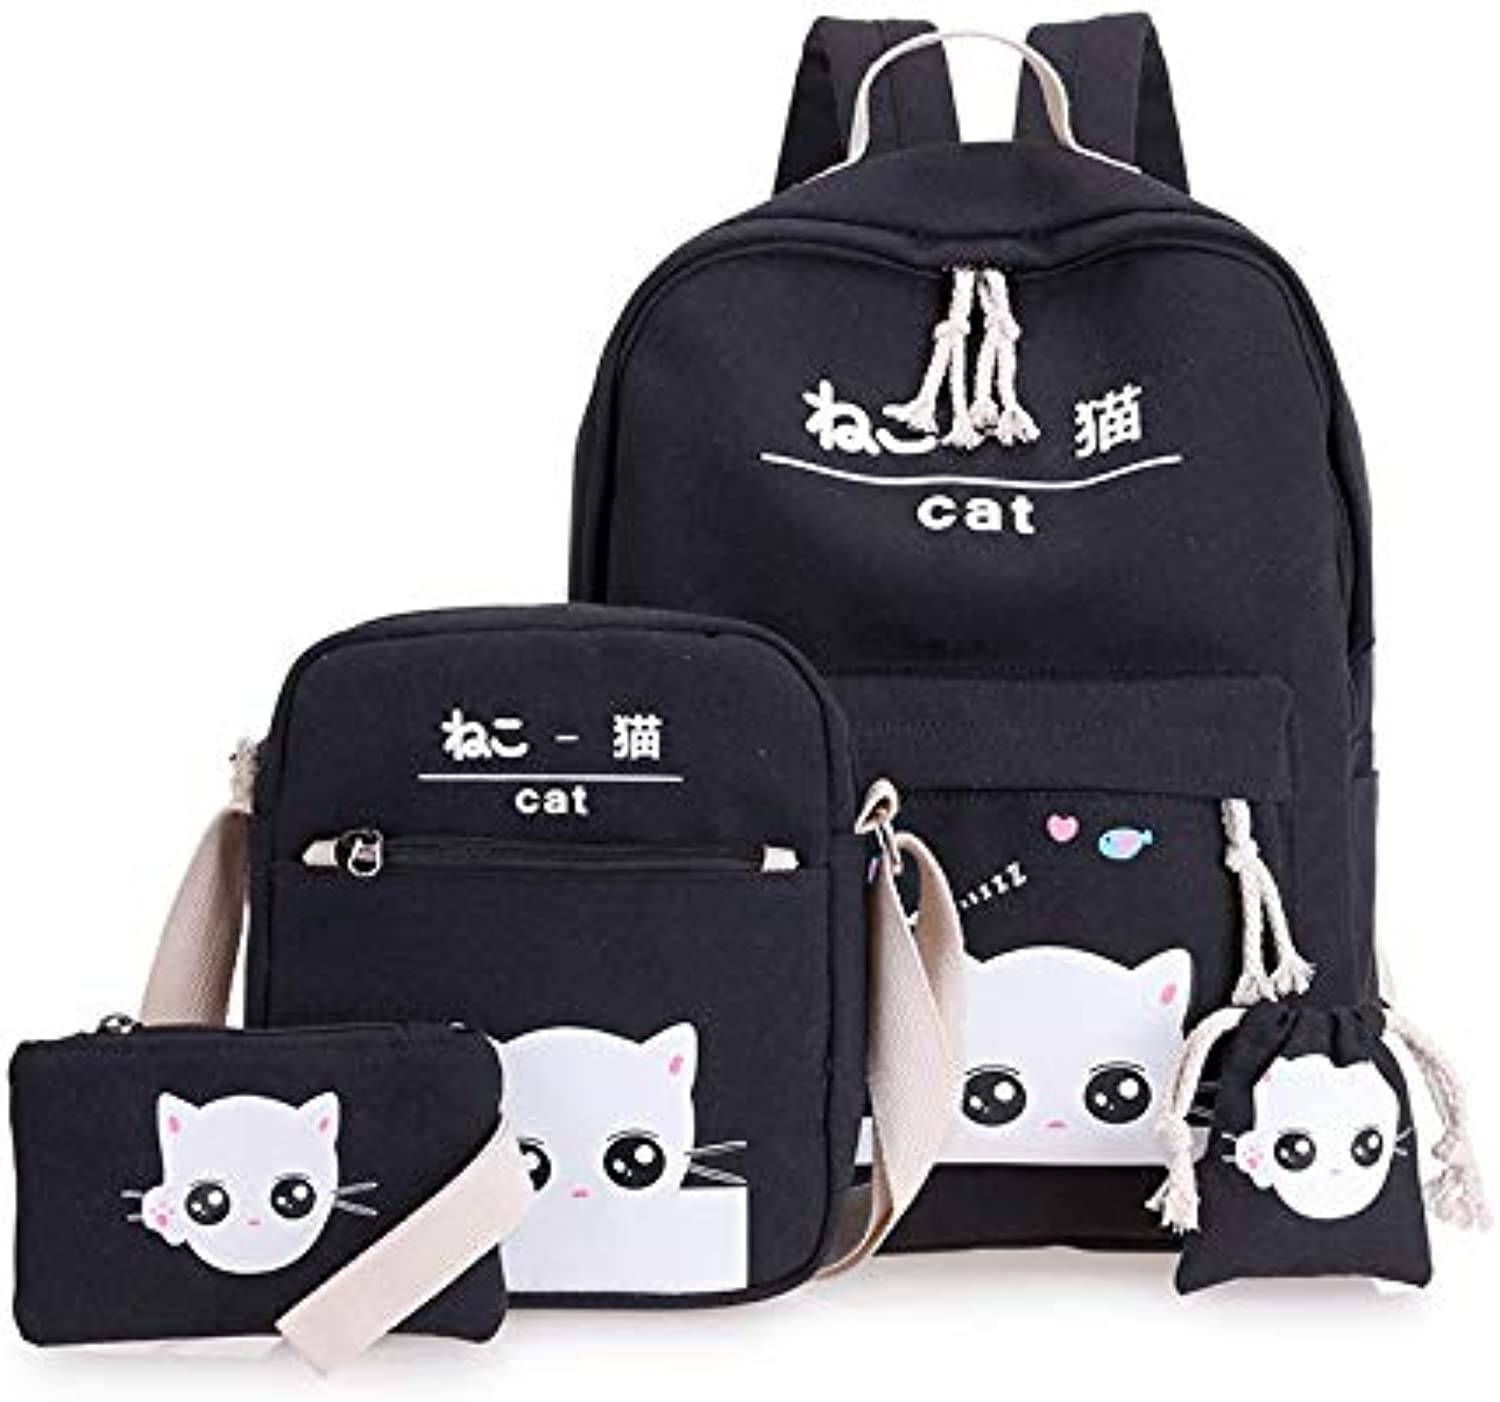 Fsweeth Double shoulder bag female small fresh campus students simple small canvas waterproof backpack,40  31  12CM, black